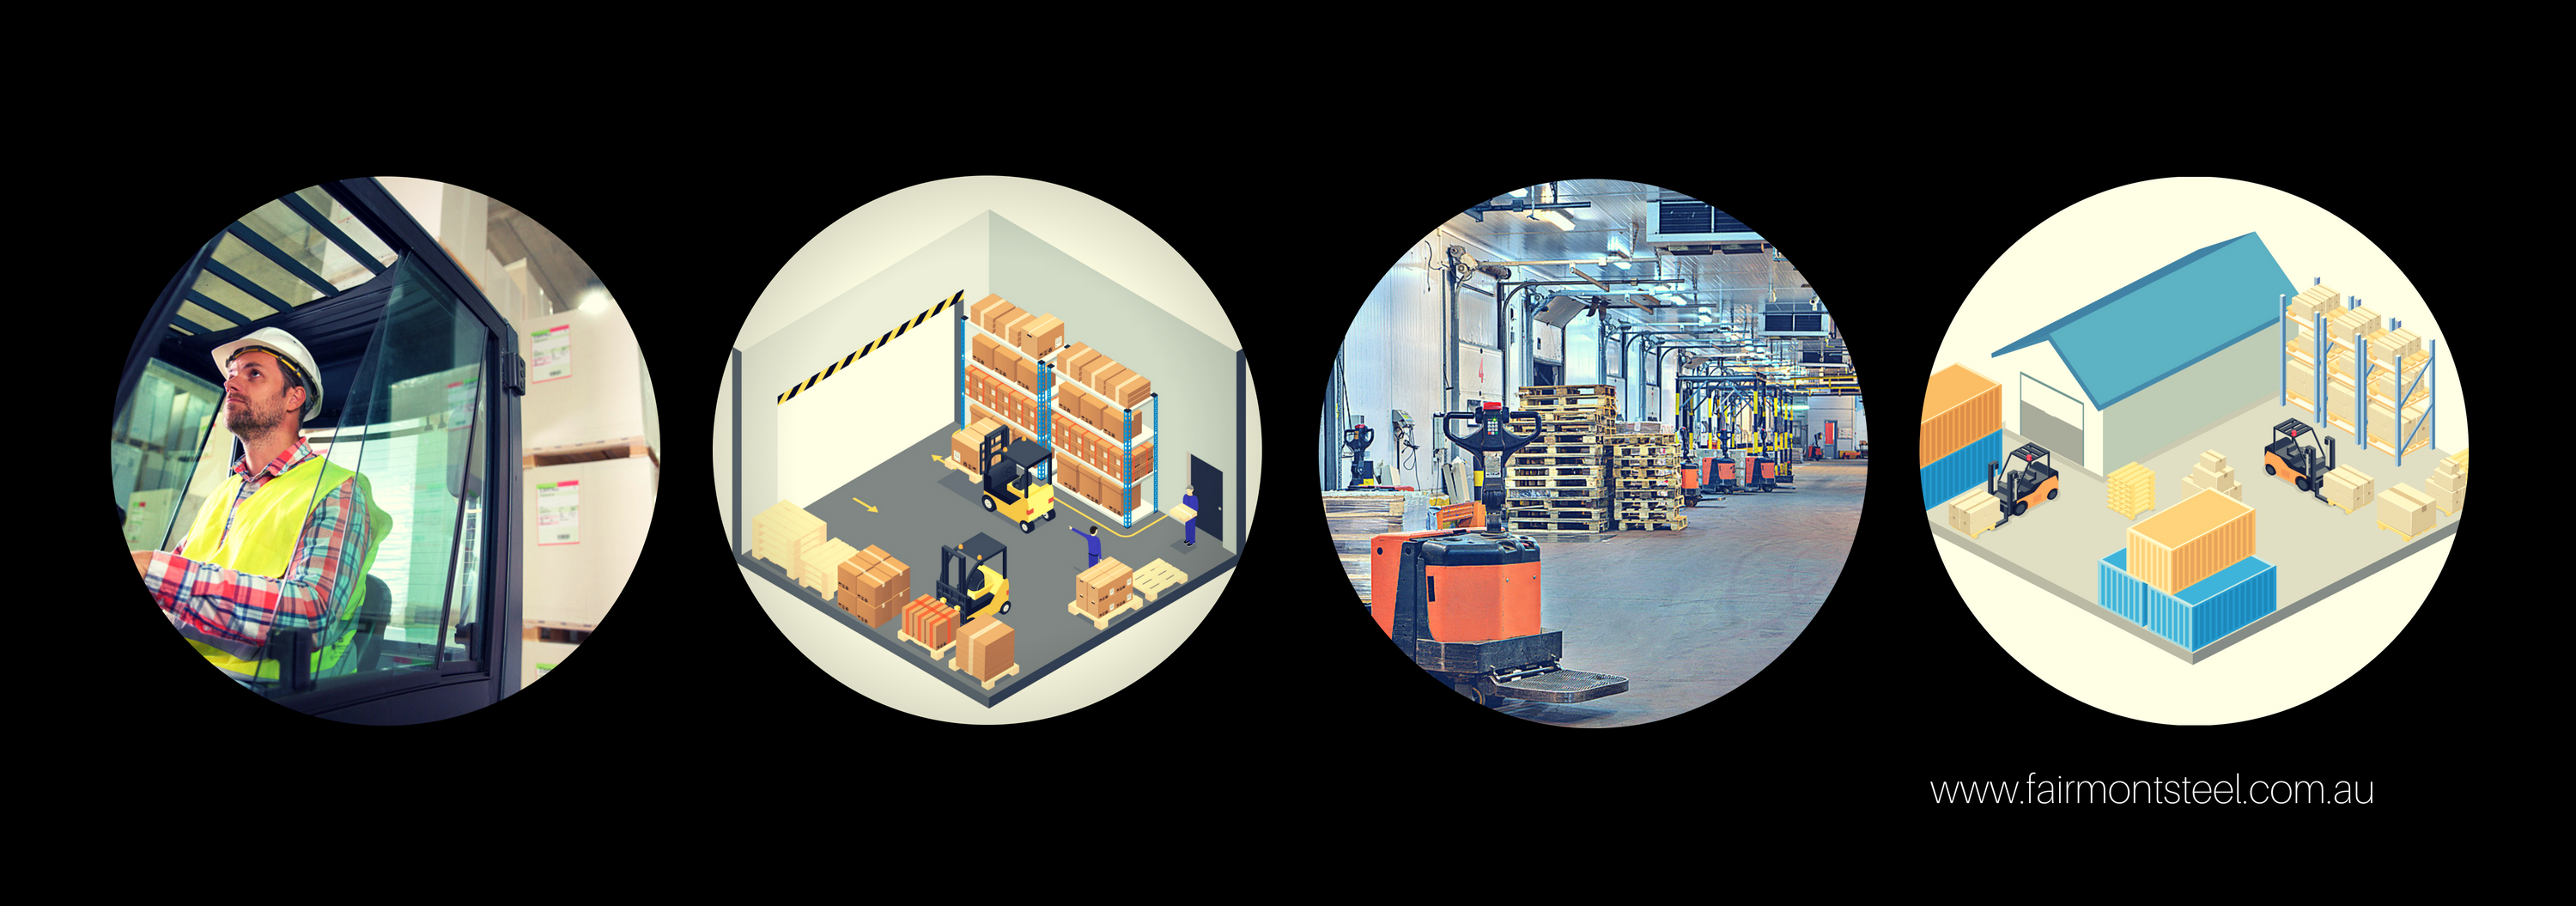 top-5-safety-issues-to-address-in-the-warehouse-environment